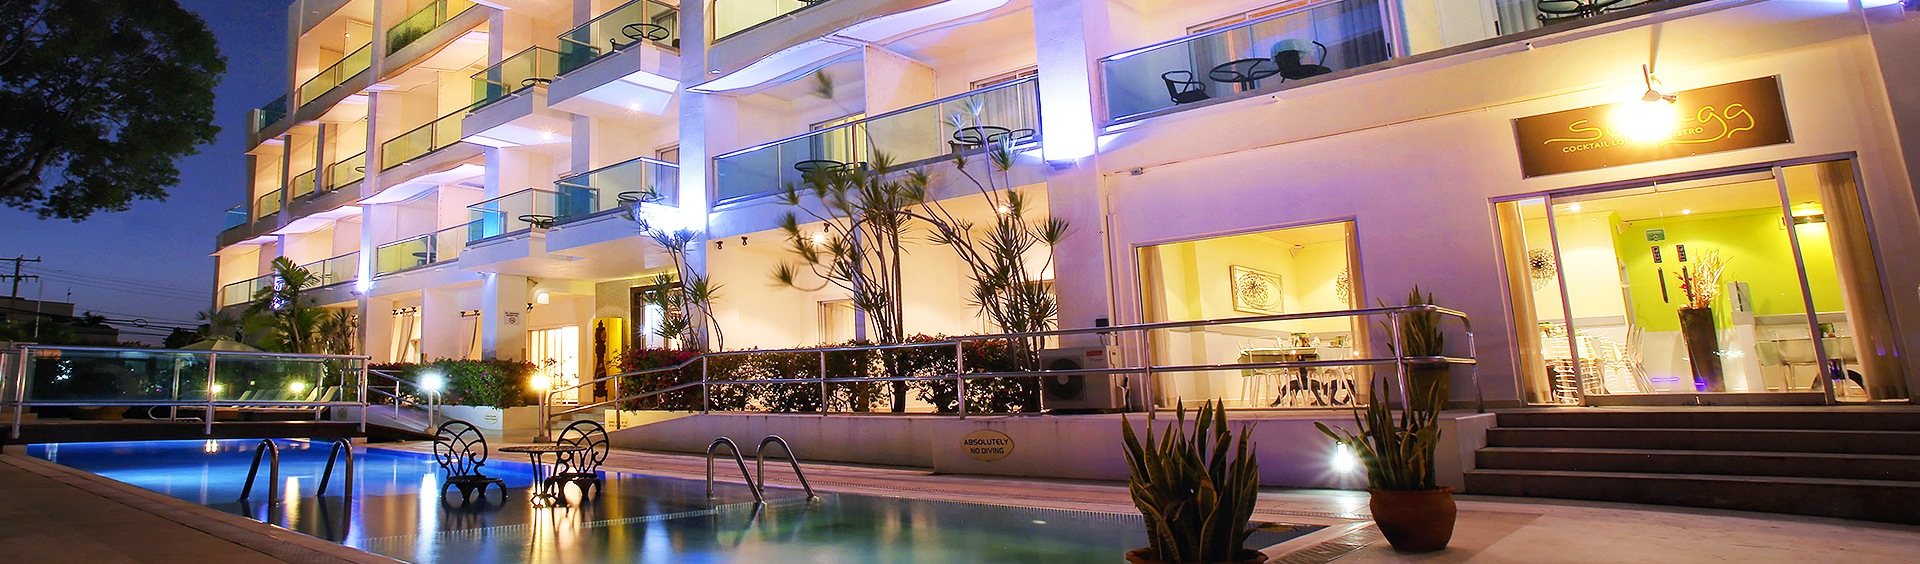 Enhance Your Stay at South Beach Hotel Christ Church, Barbados